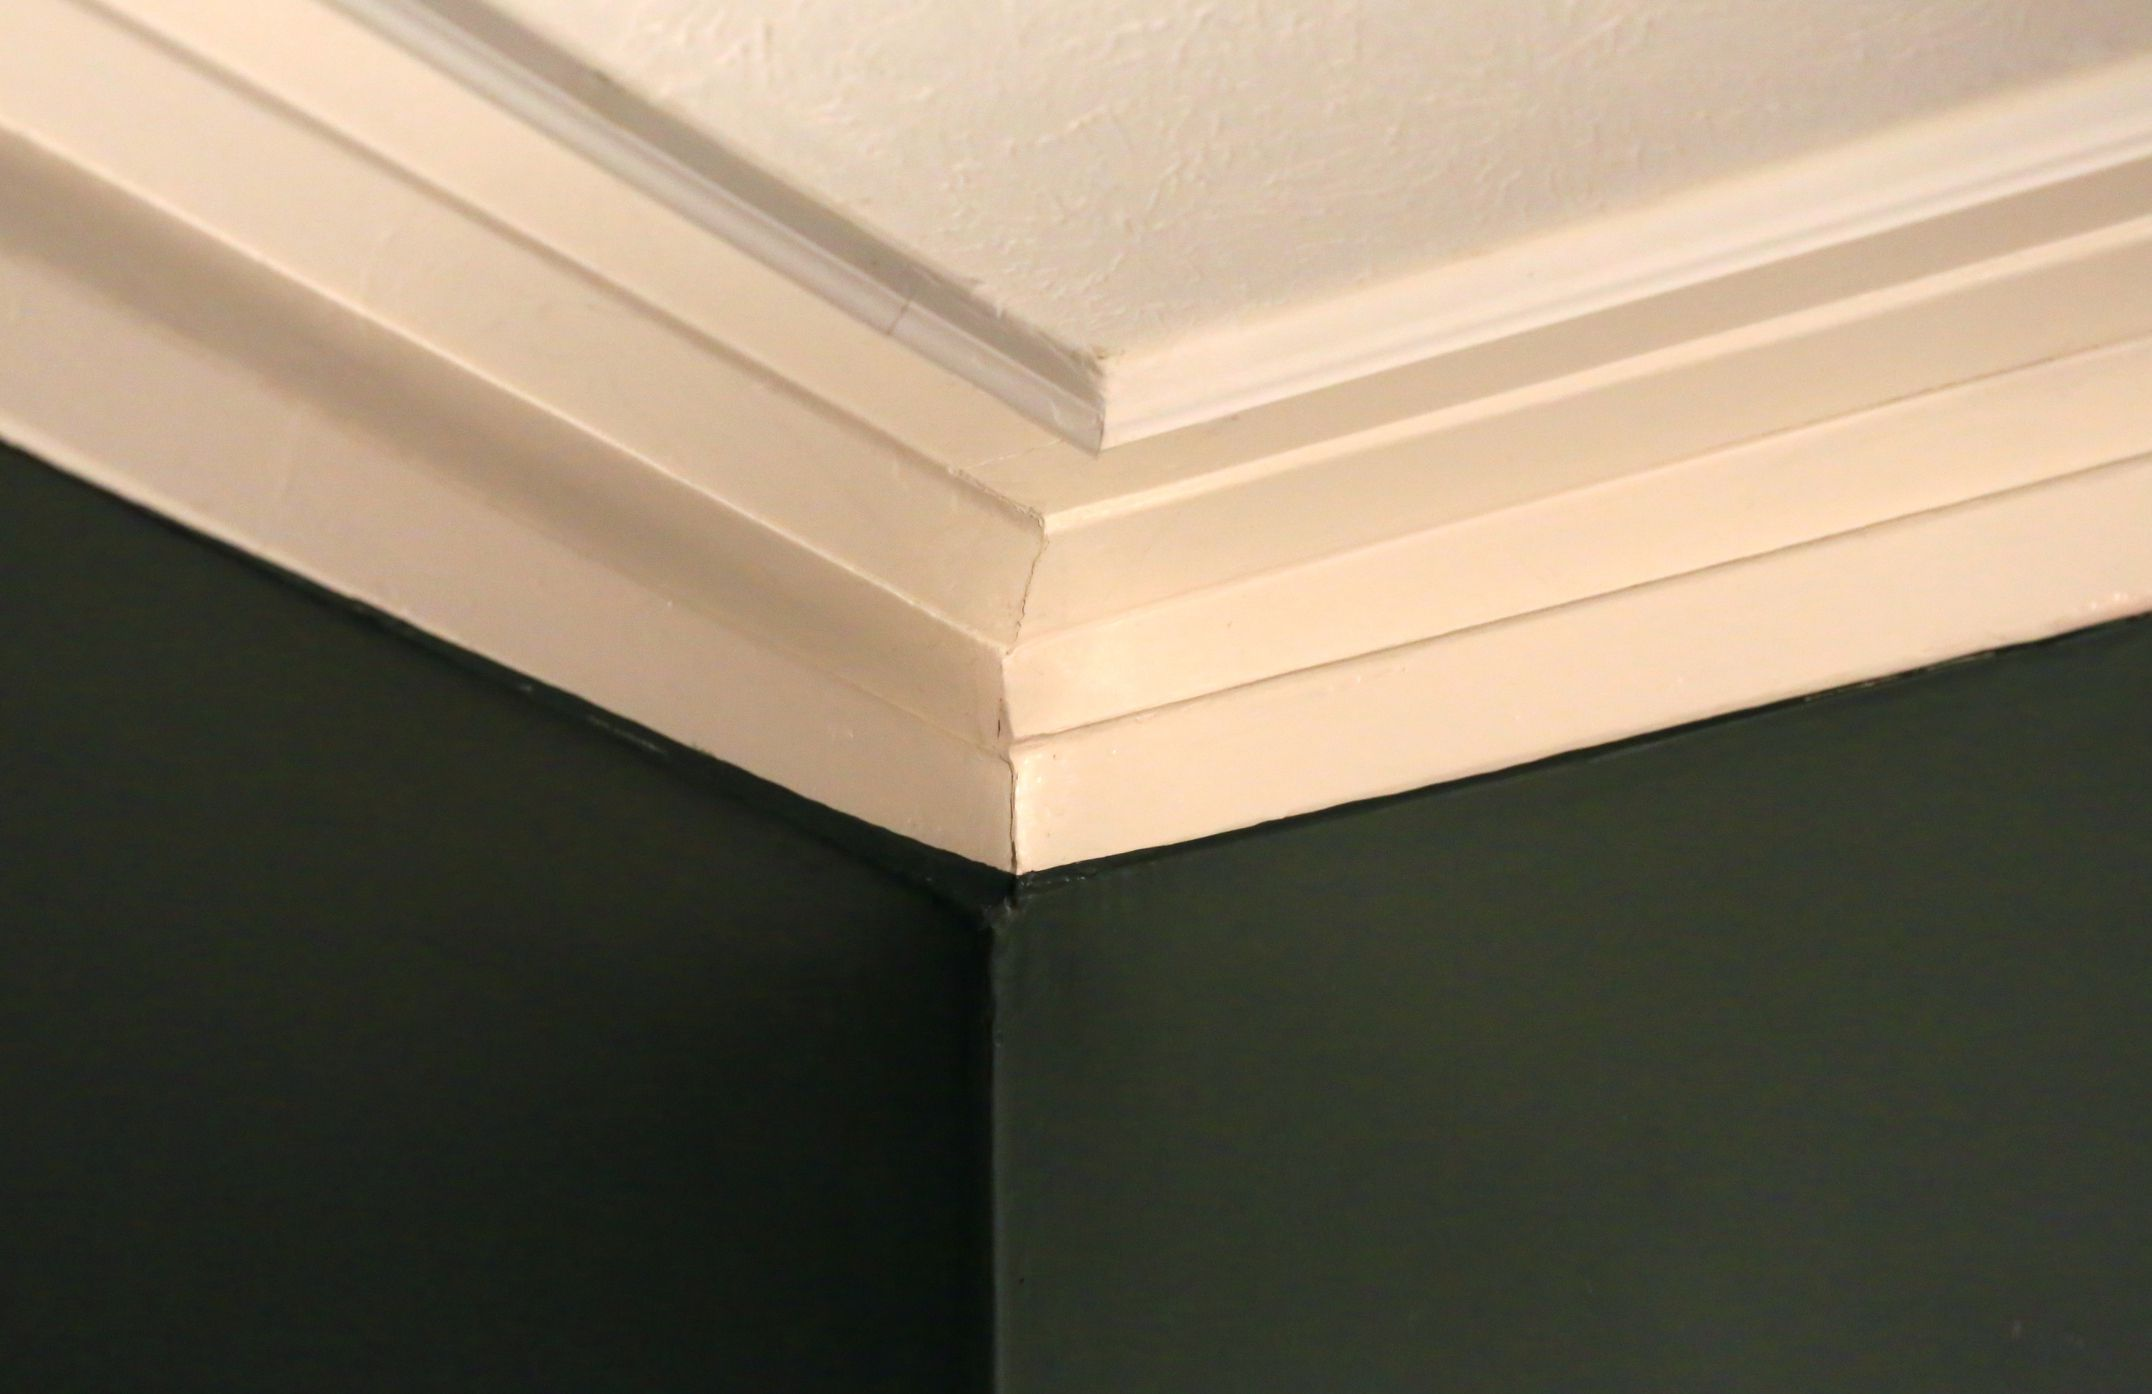 5 Crown Molding Ideas For Your Home Wall Trim Kitchen Cabinet Crown Molding Dark Kitchen Cabinets